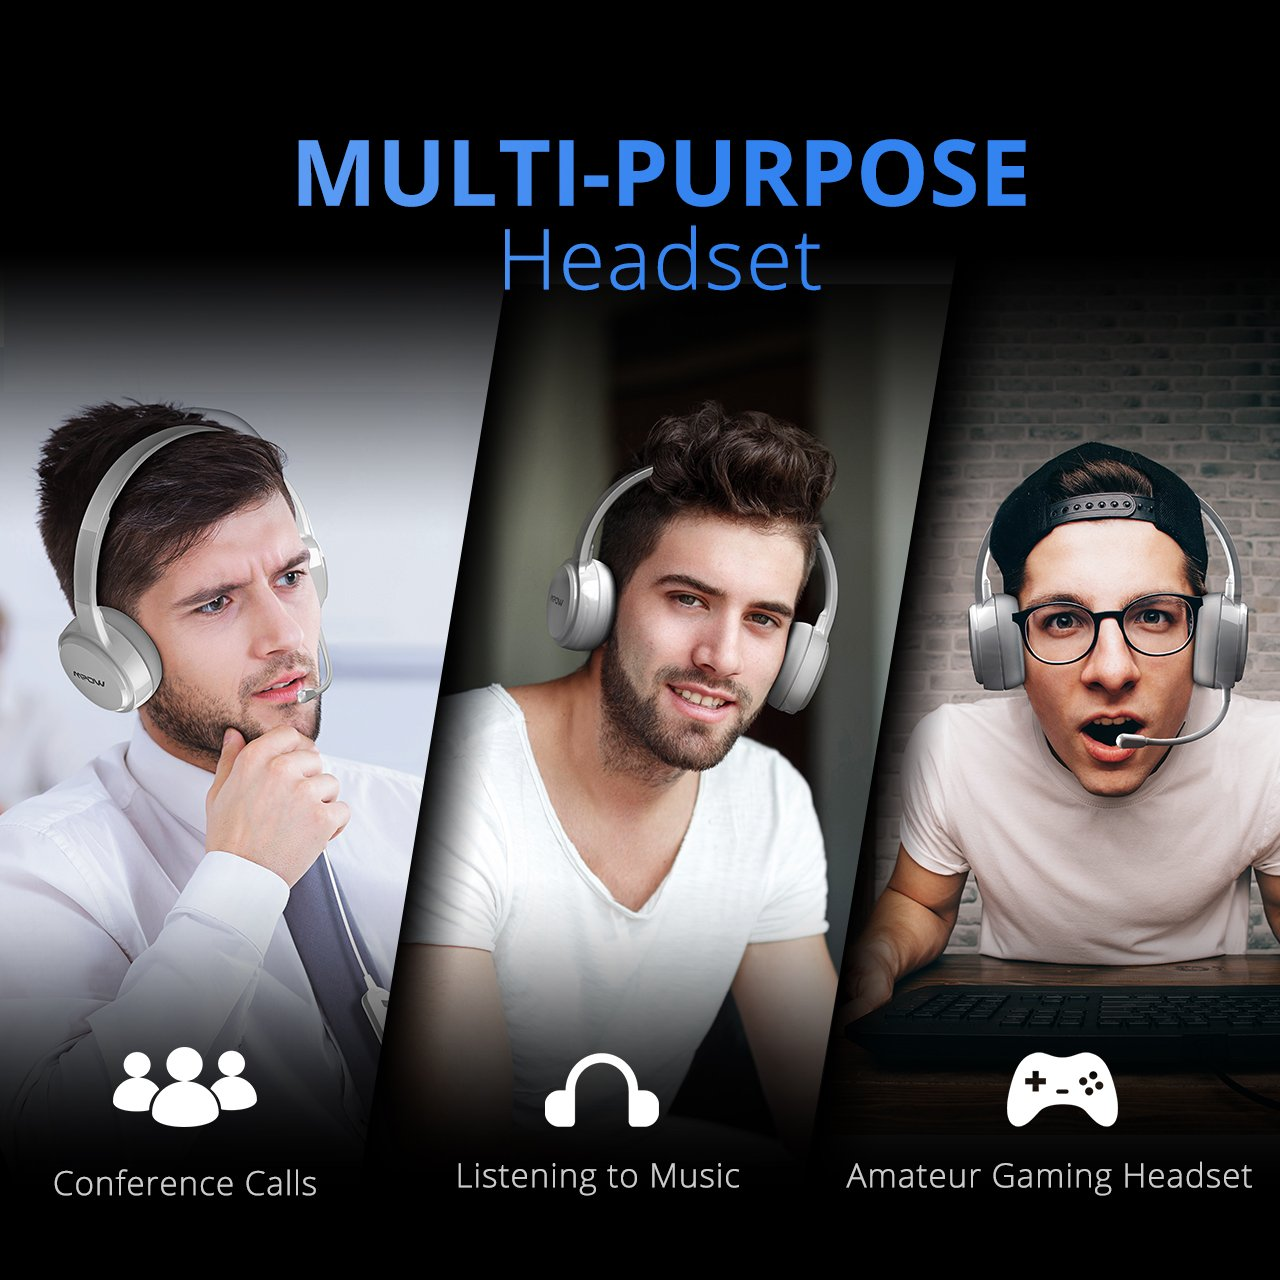 Mpow 071 USB Headset/ 3.5mm Computer Headset with Microphone Noise Cancelling, Lightweight PC Headset Wired Headphones, Business Headset for Skype, Webinar, Phone, Call Center PAMPBH125AD-USAA7